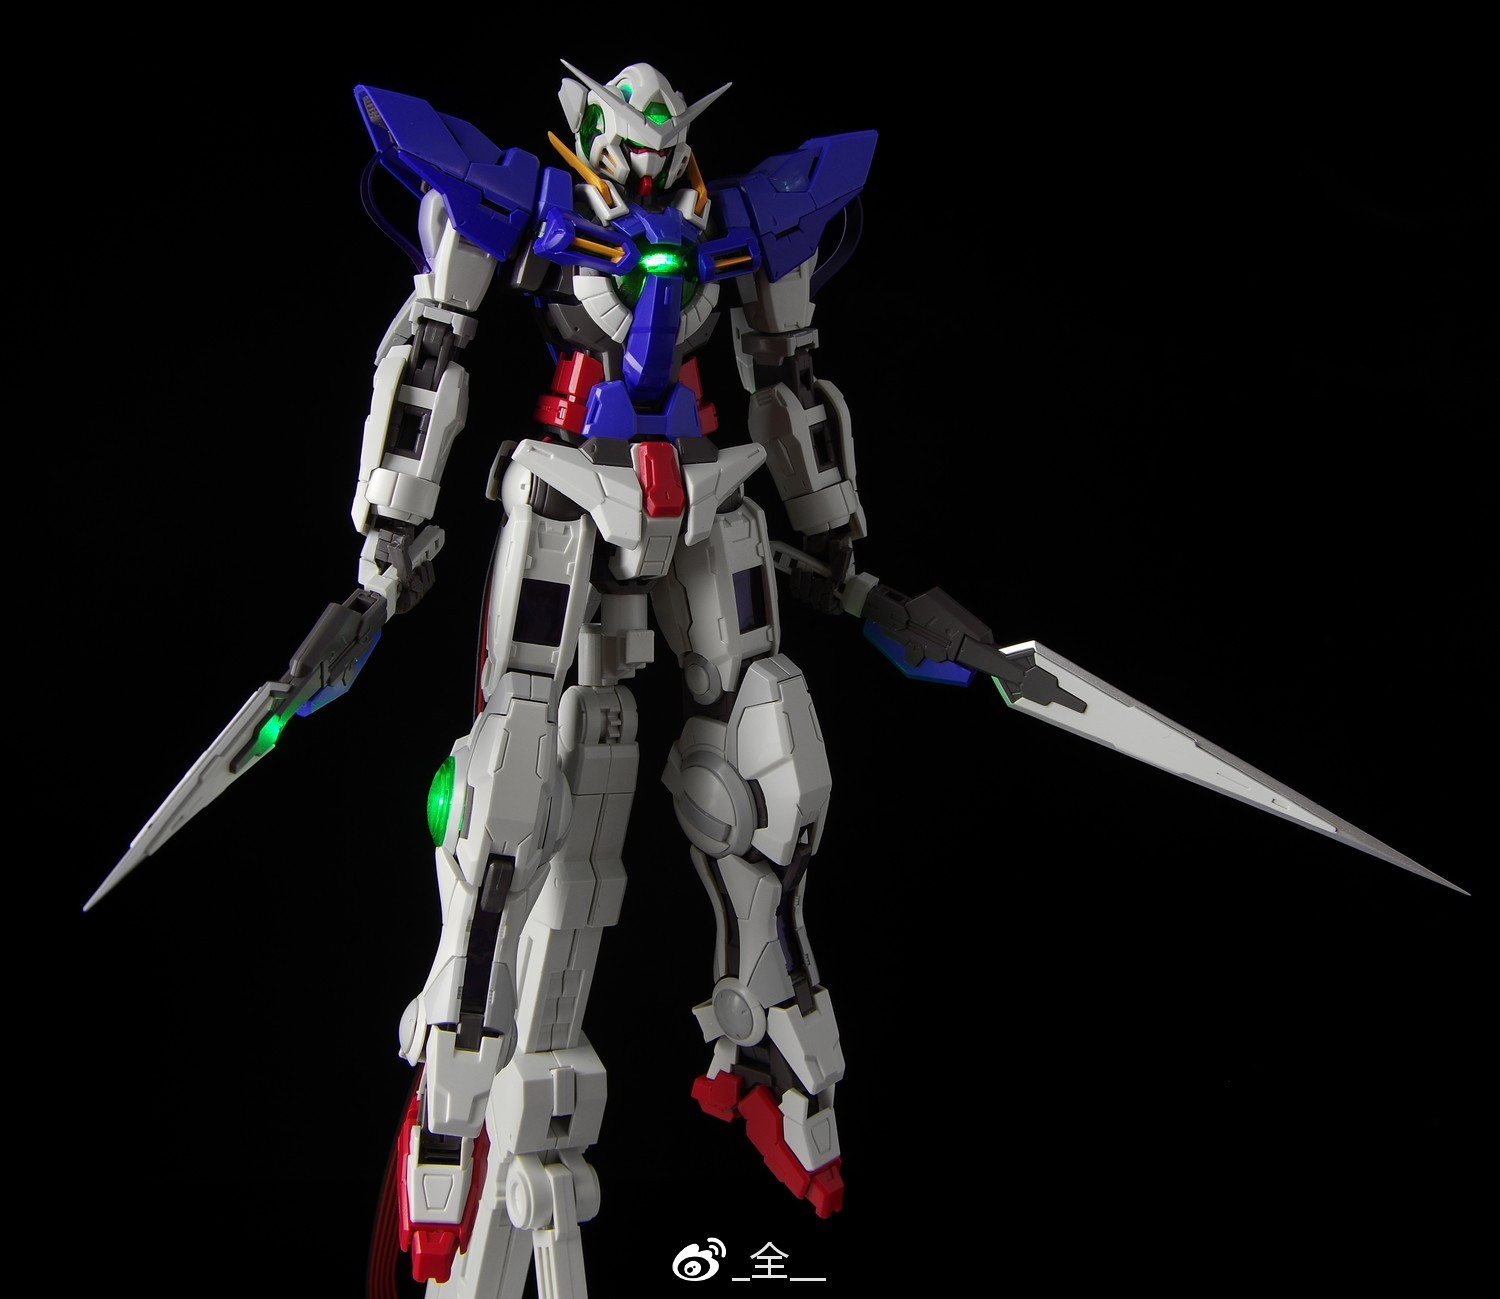 S269_mg_exia_led_hobby_star_inask_062.jpg